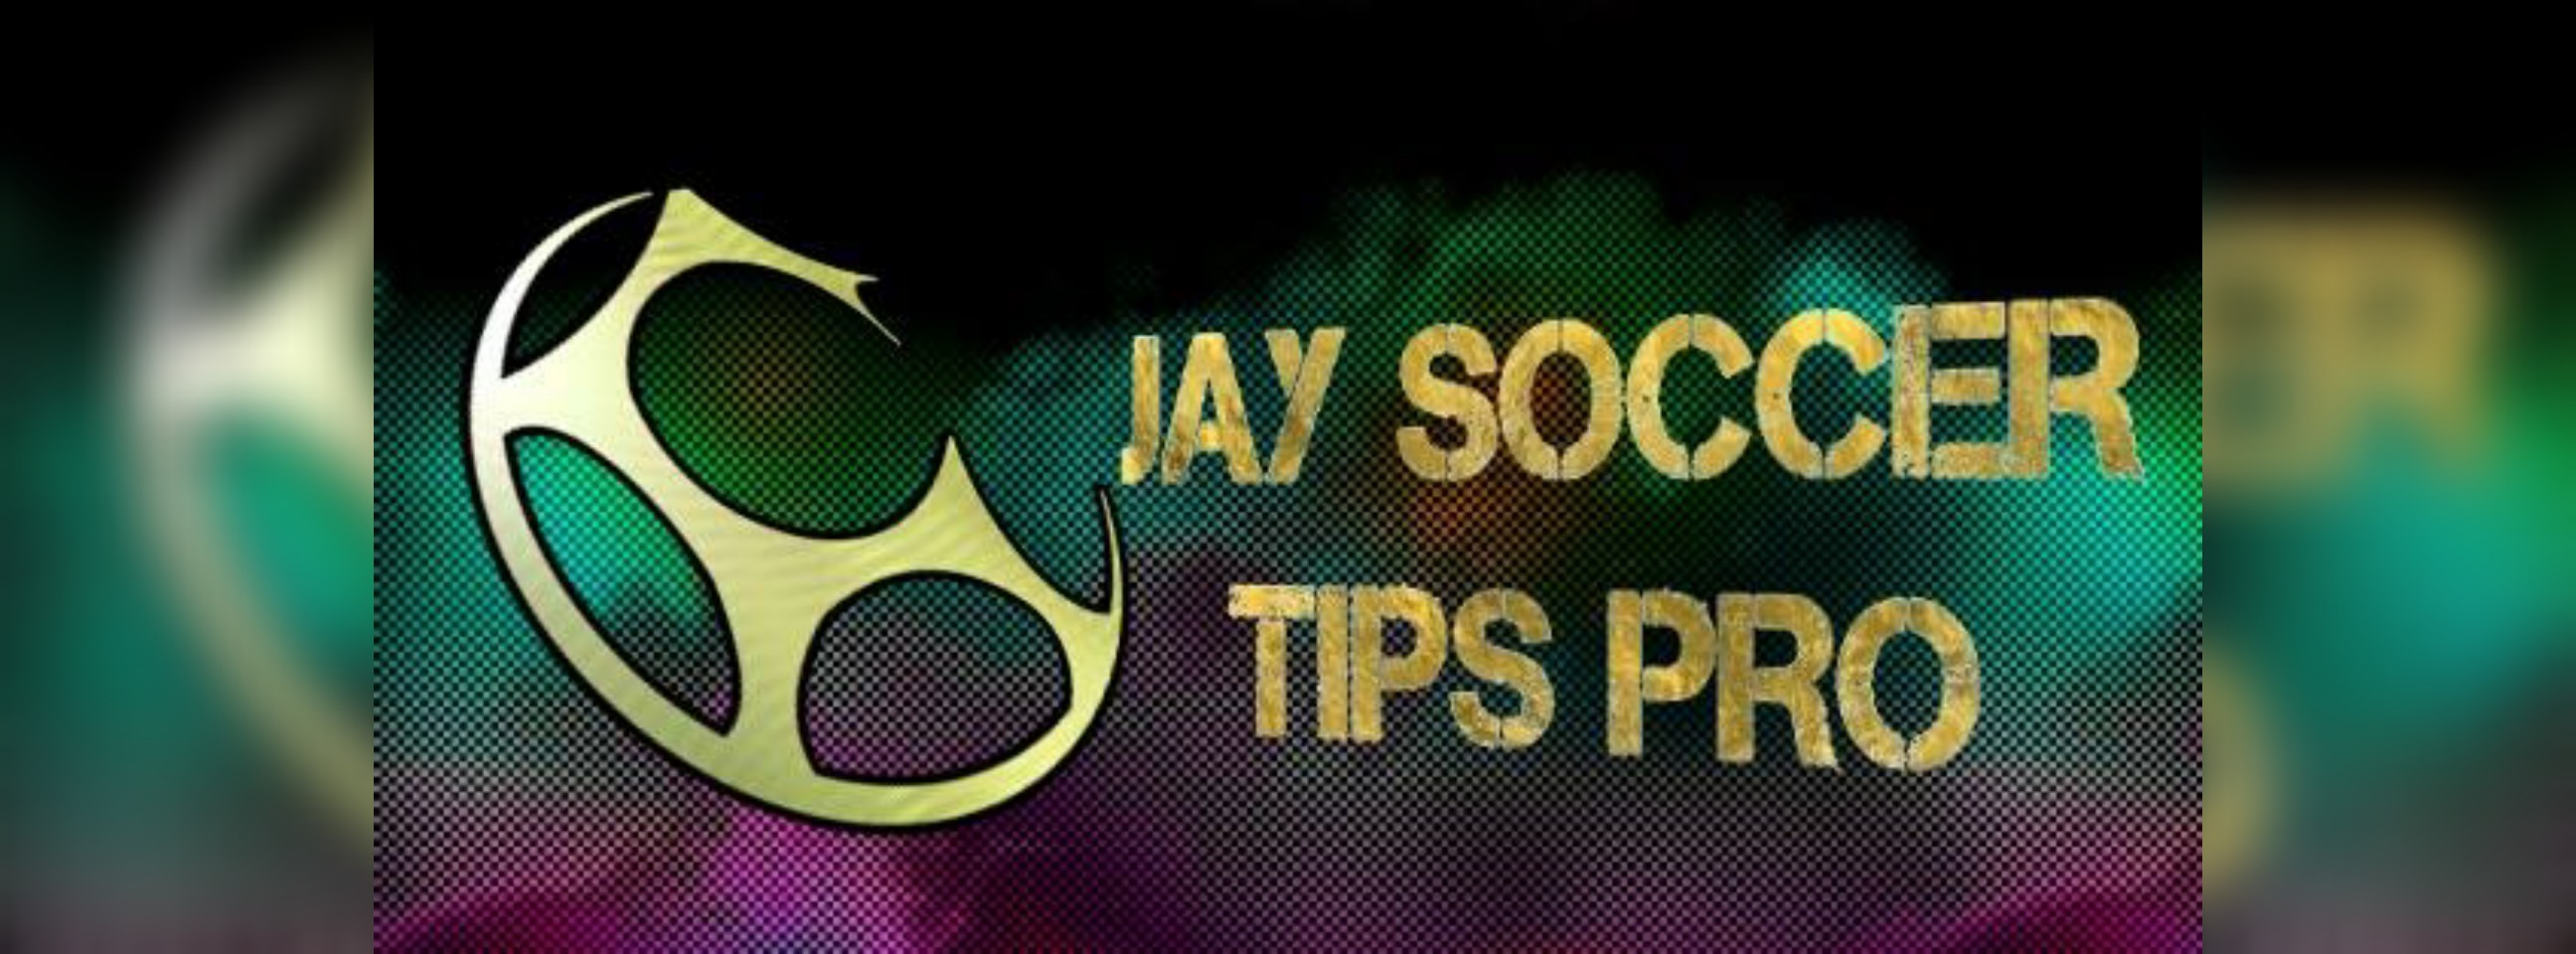 Football Prediction & Tips | Jaysoccertips – Football Prediction